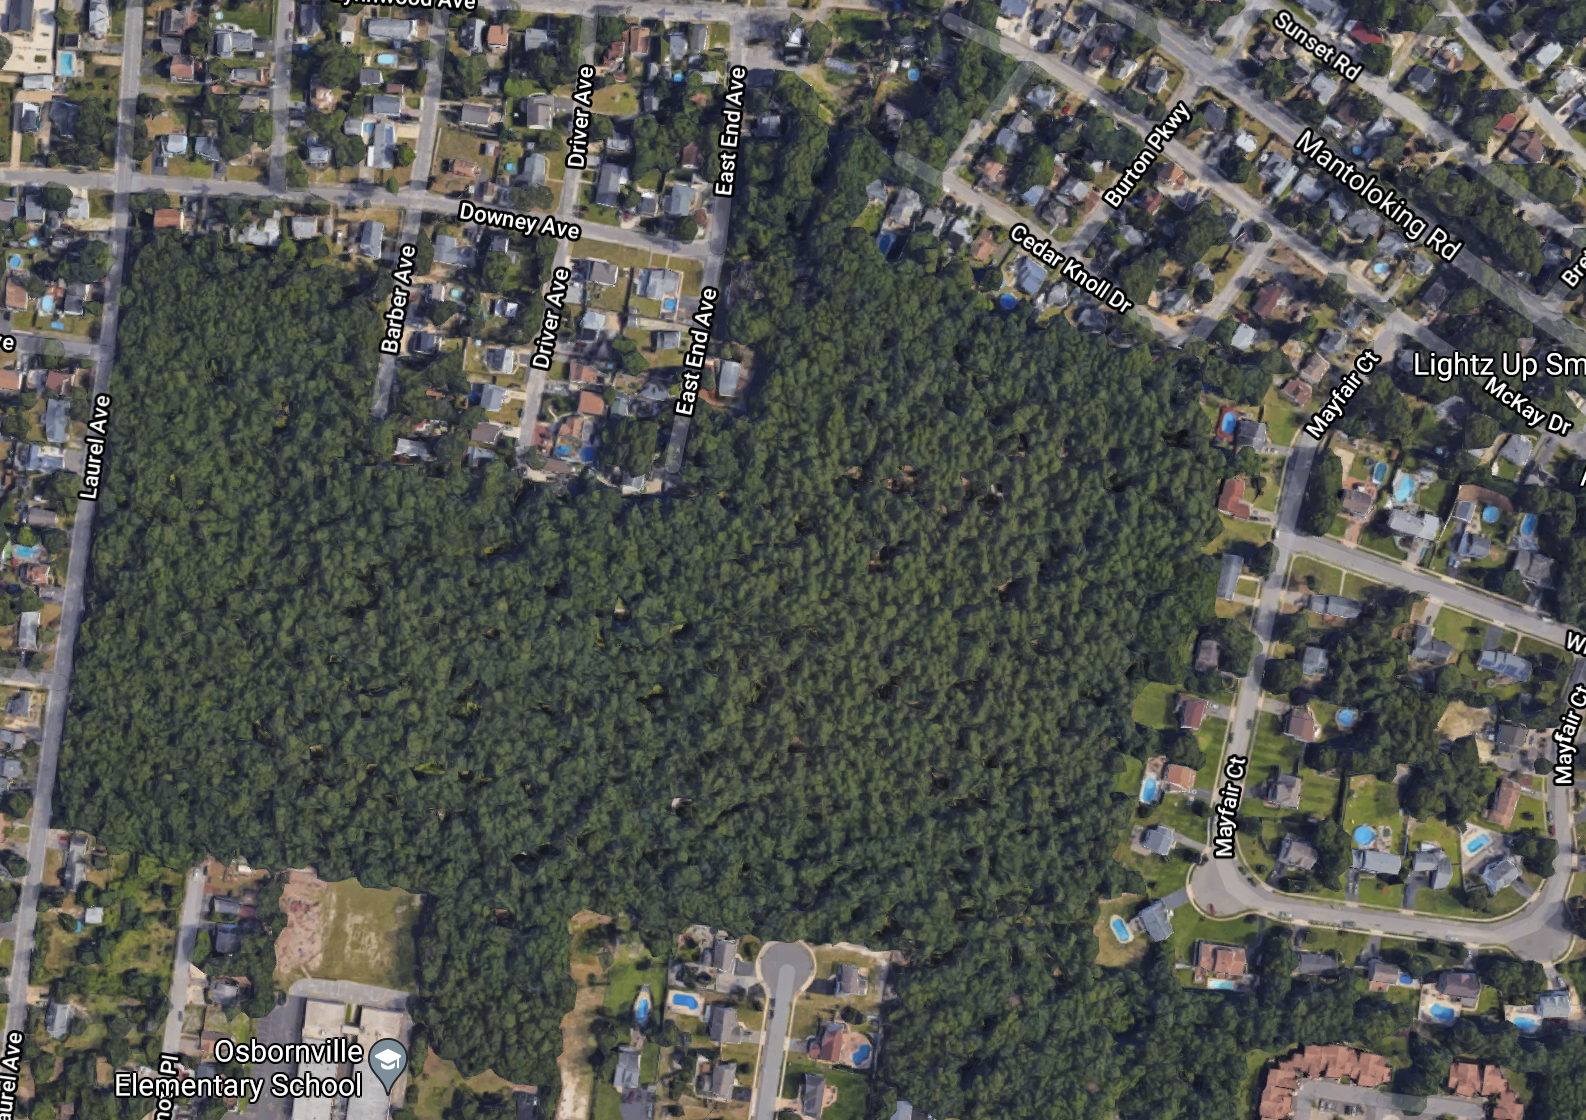 A property owned by the Church of Visitation that may be slated for residential development. (Credit: Google Maps)